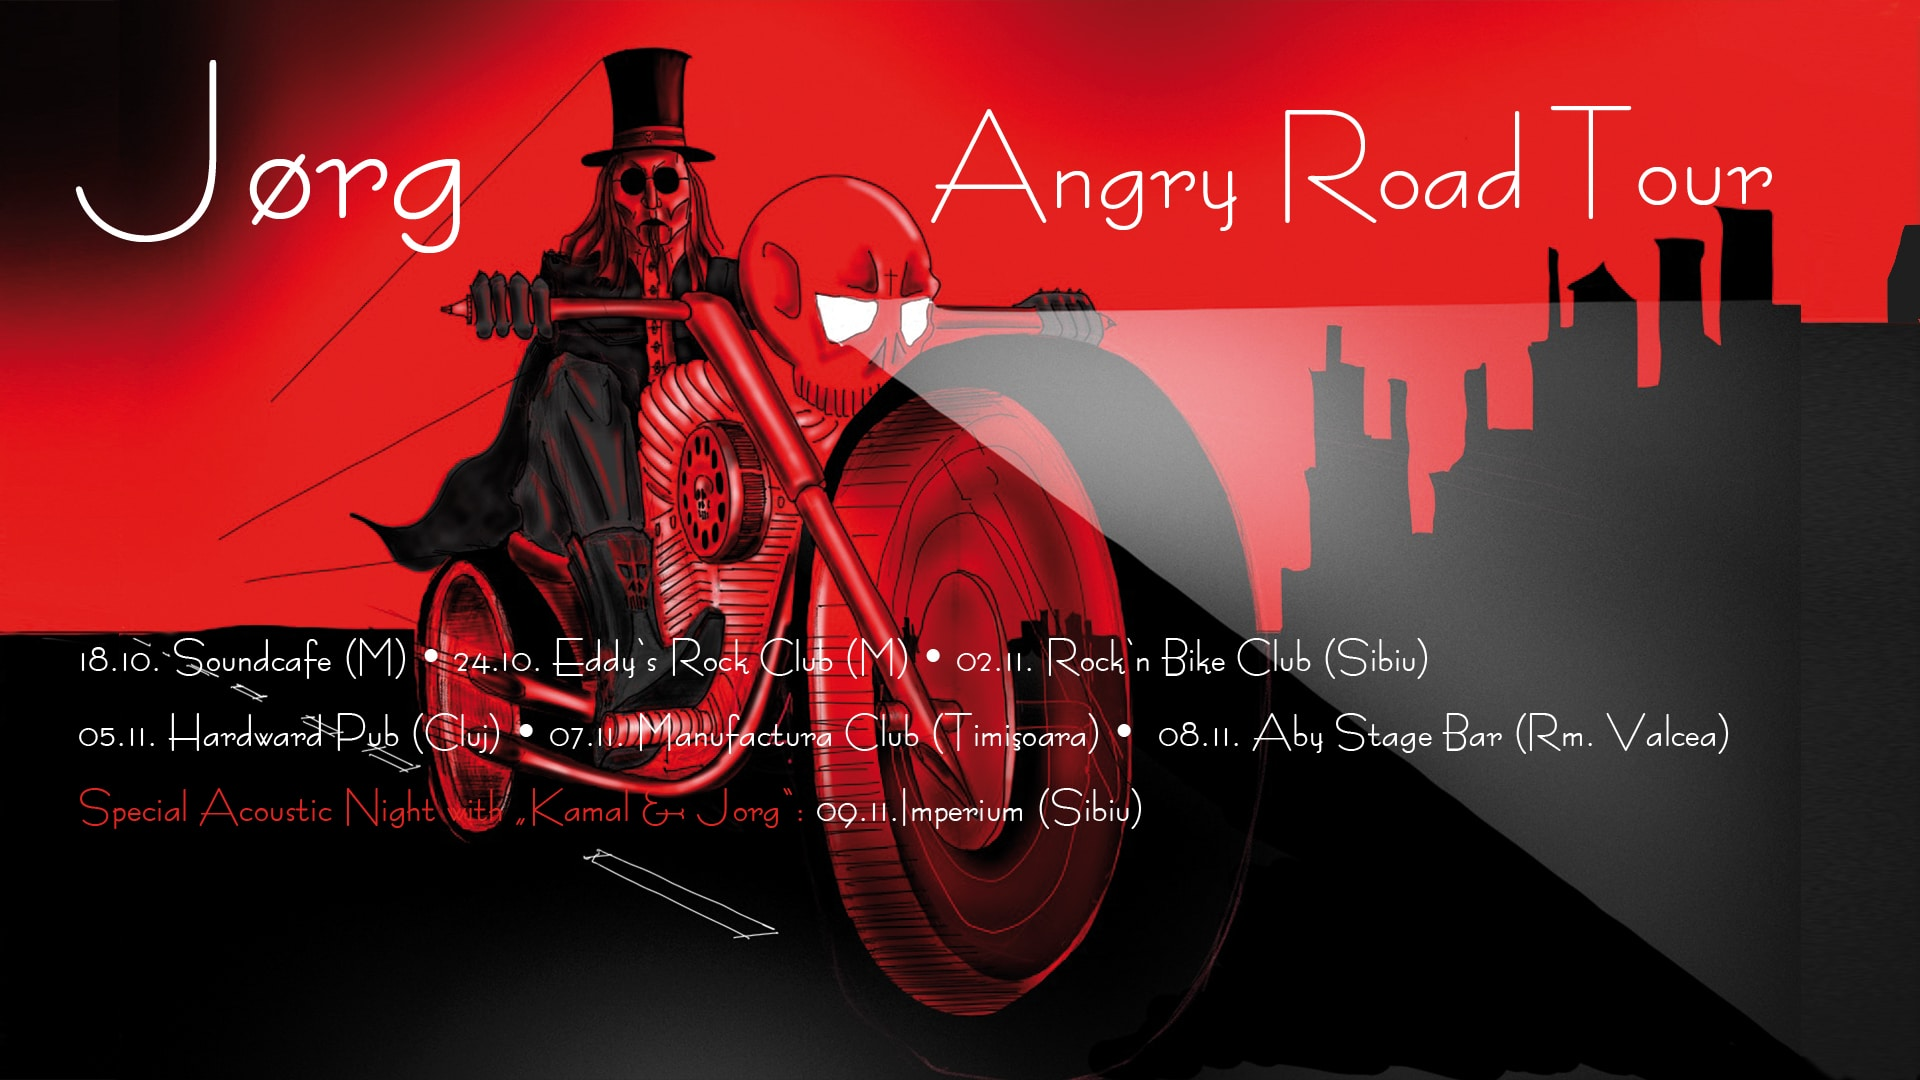 Angry Road Tour 2019